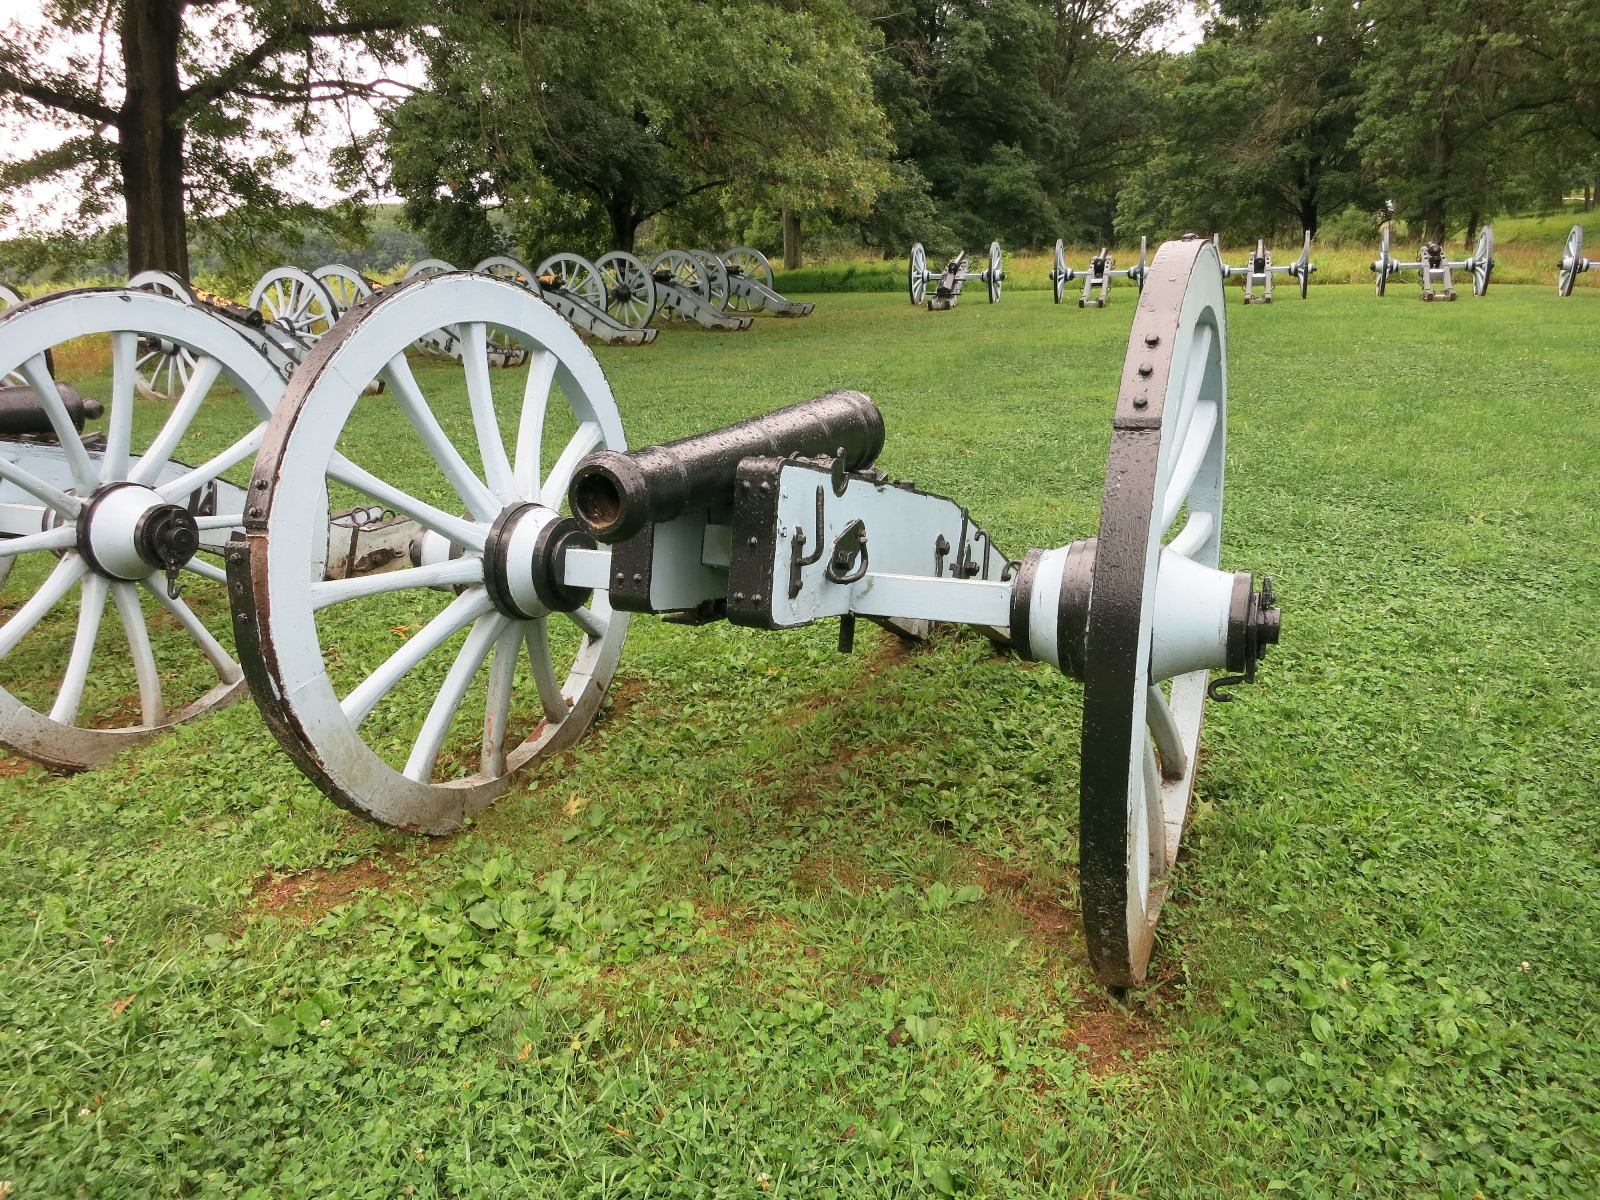 Replica cannons in the Artillery Park at Valley Forge National Park. The Artillery Park is located east of the parking lot on East Inner Line Drive. Photo taken on August 22, 2014.